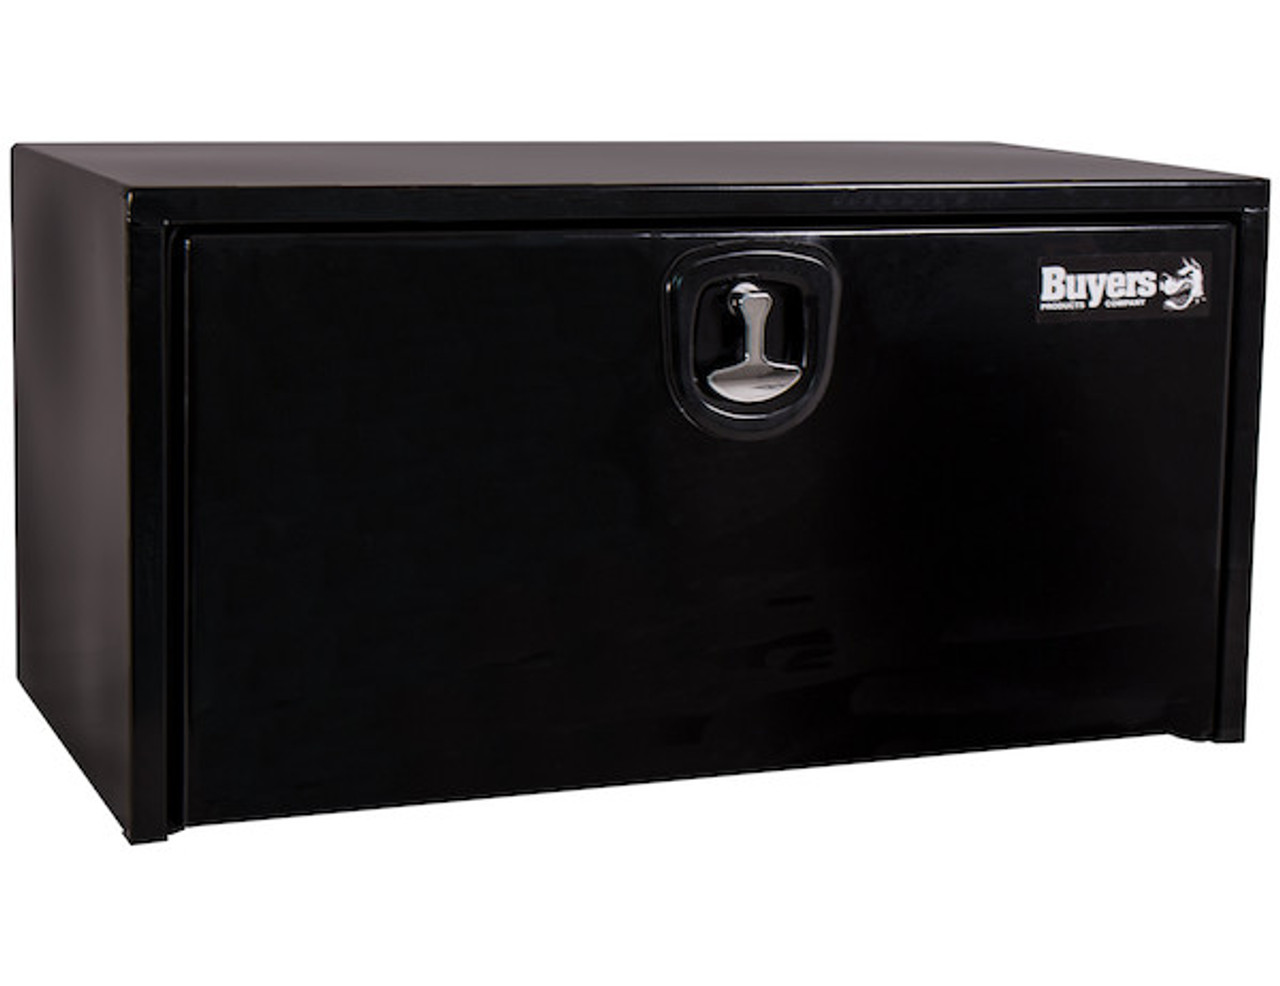 "1732300 BUYERS PRODUCTS BLACK STEEL UNDERBODY TRUCK TOOLBOX WITH 3-POINT LATCH 18""Hx18""Dx24""W"